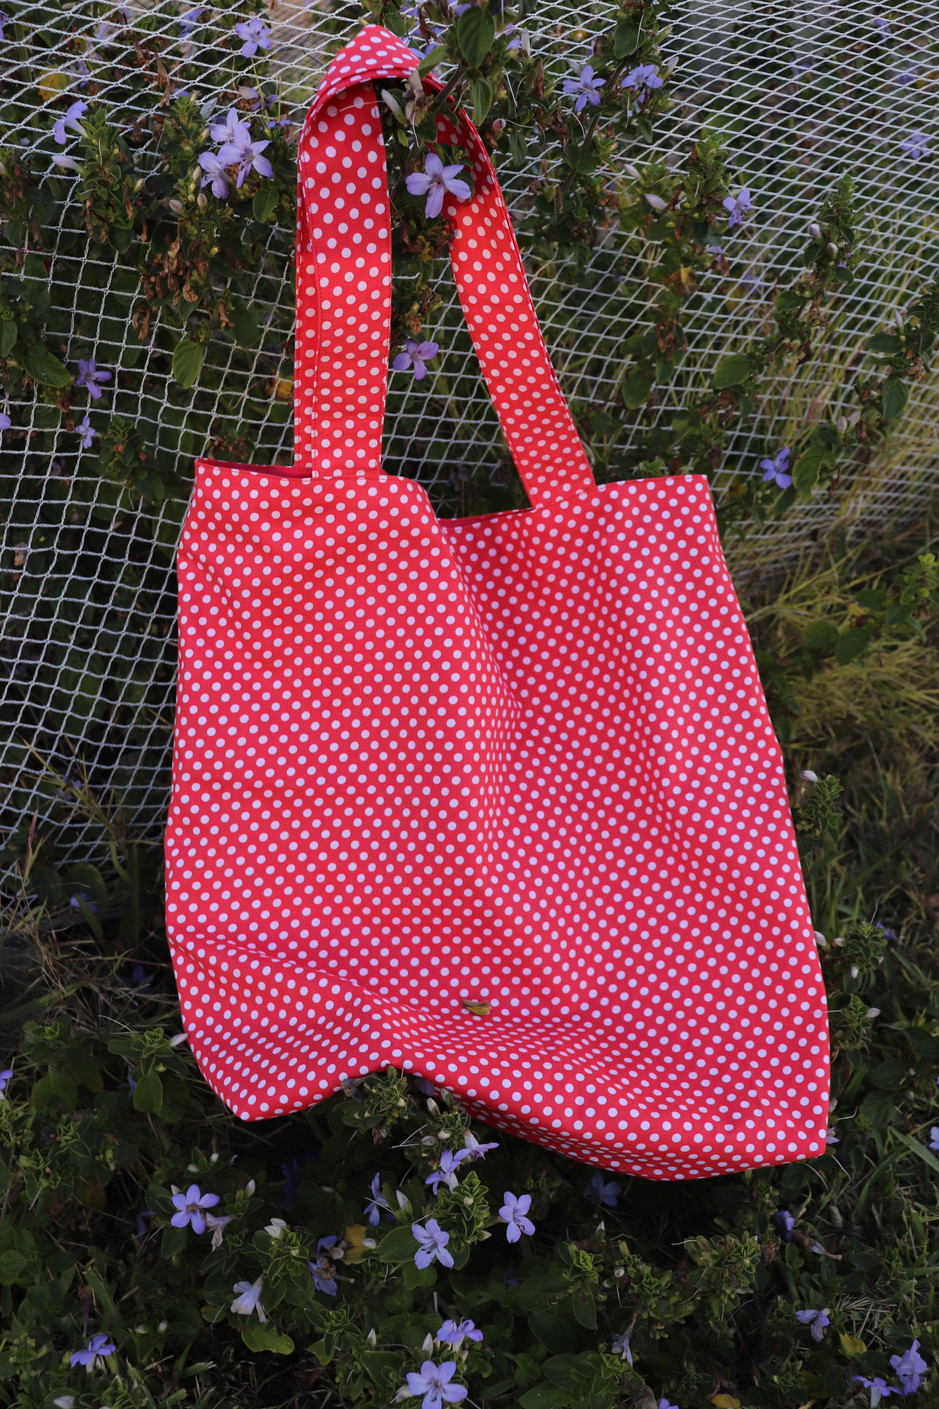 HOW TO SEW A TOTE BAG WITH LINING | SEWING TUTORIAL